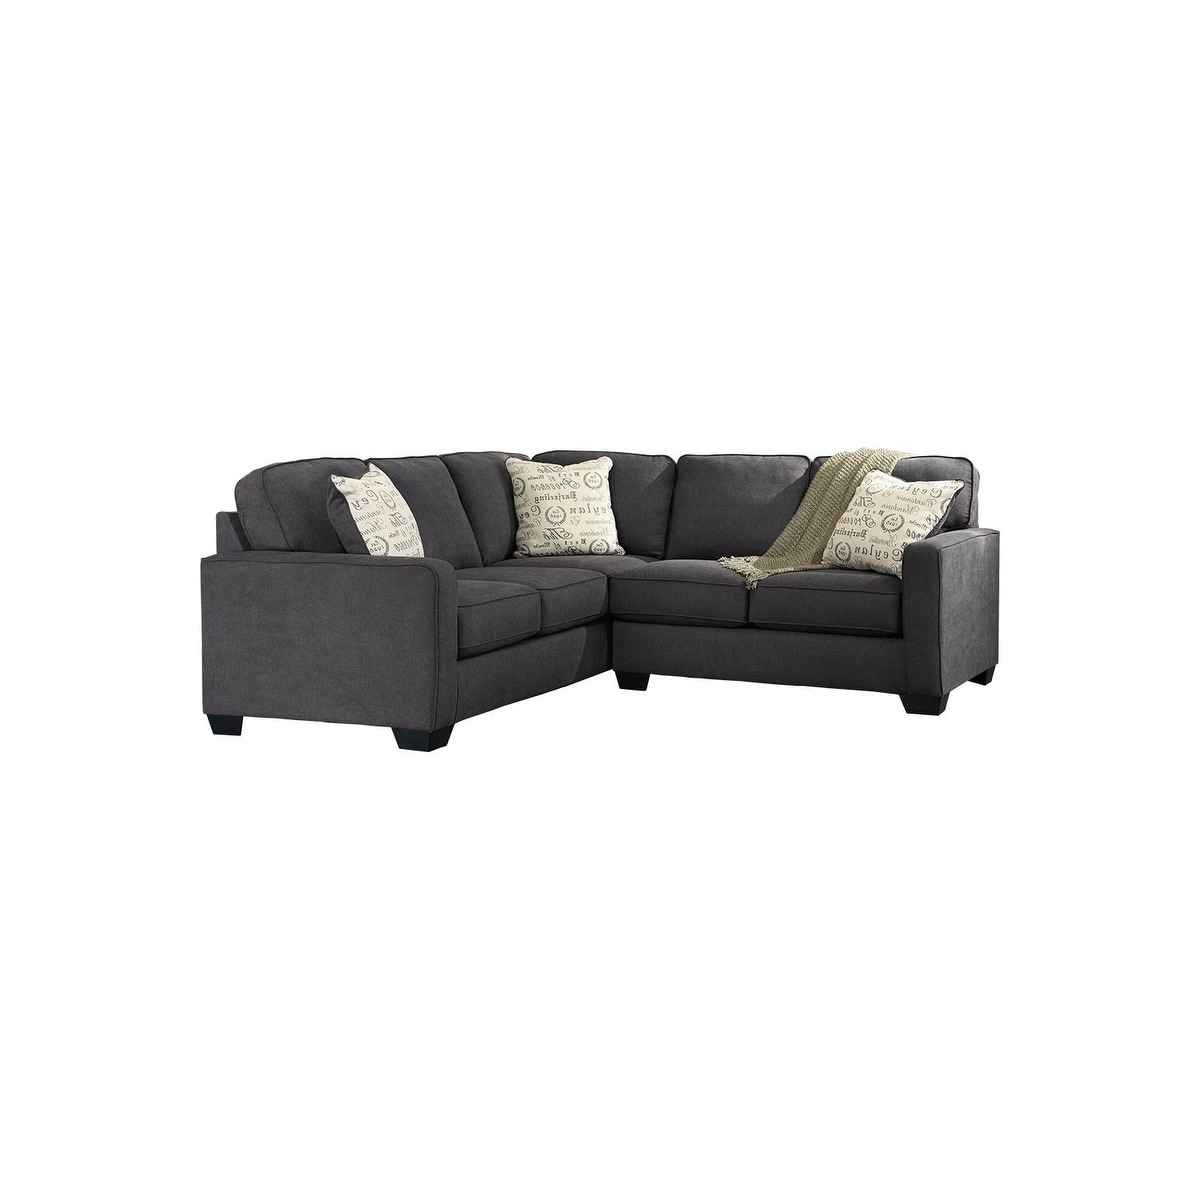 Pleasant Alenya 2 Piece Charcoal Sectional Cjindustries Chair Design For Home Cjindustriesco